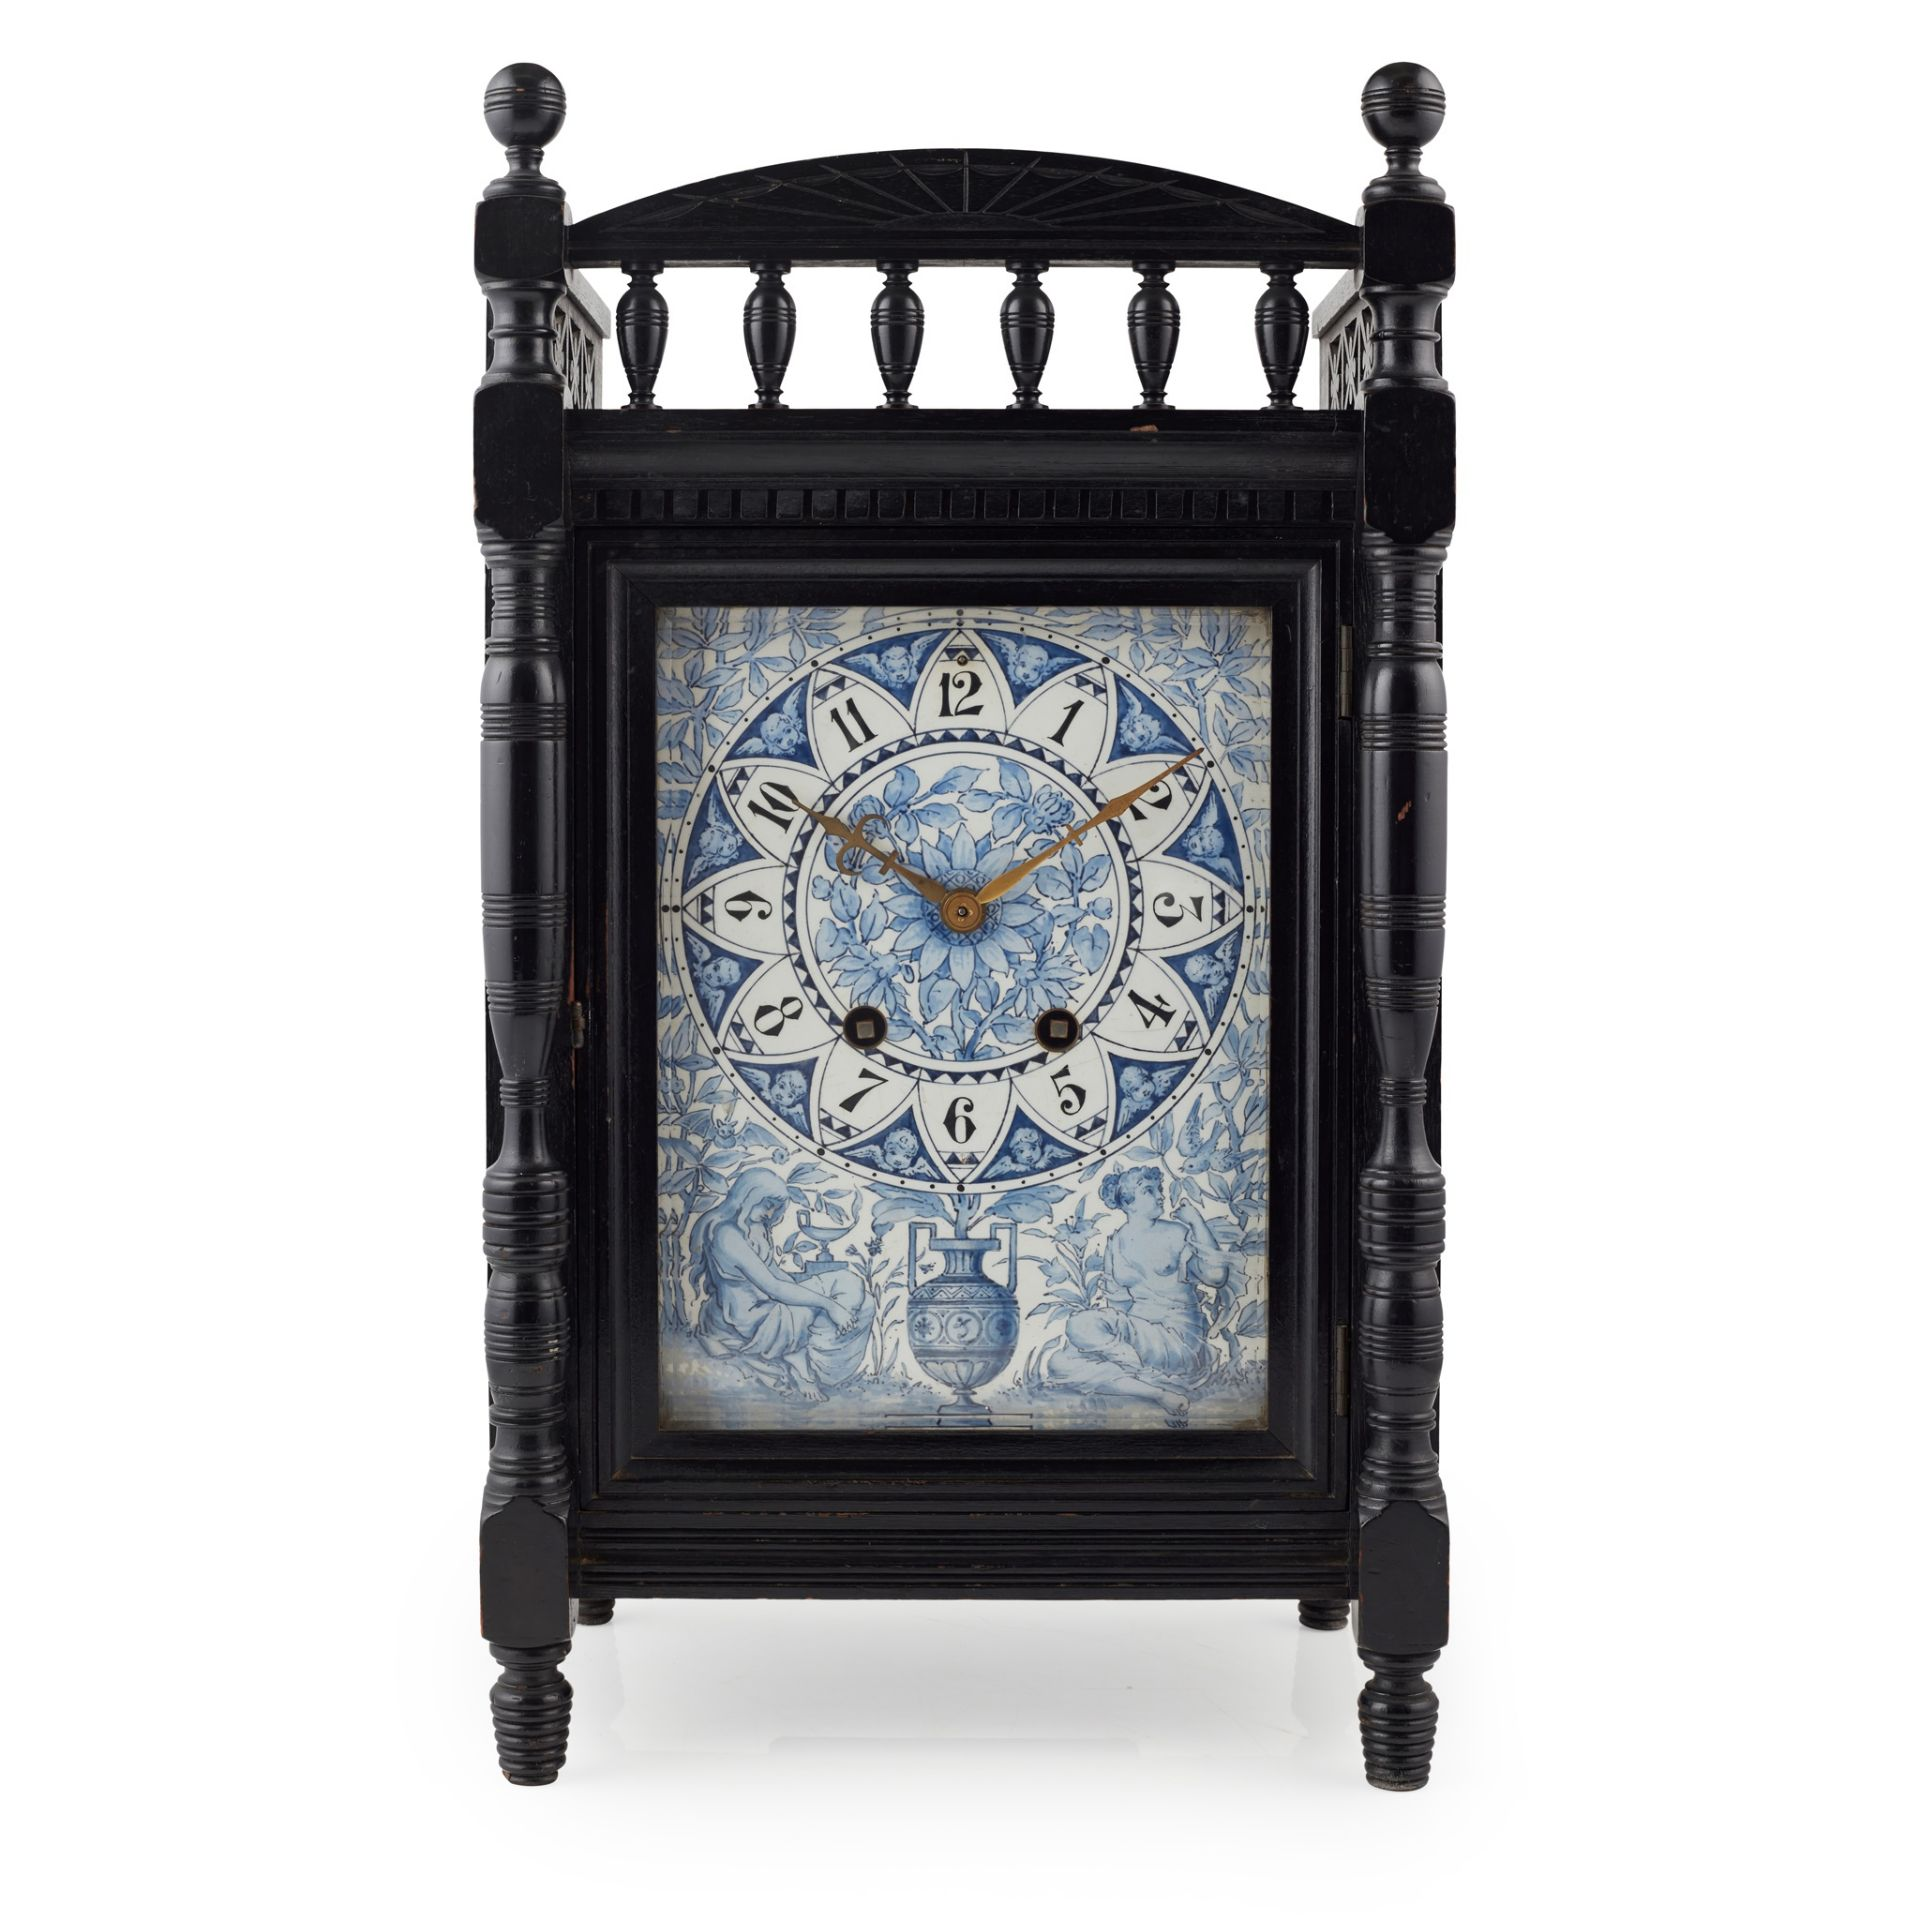 ATTRIBUTED TO LEWIS FOREMAN DAY FOR HOWELL, JAMES & CO., LONDON AESTHETIC MOVEMENT MANTEL CLOCK, - Image 2 of 2